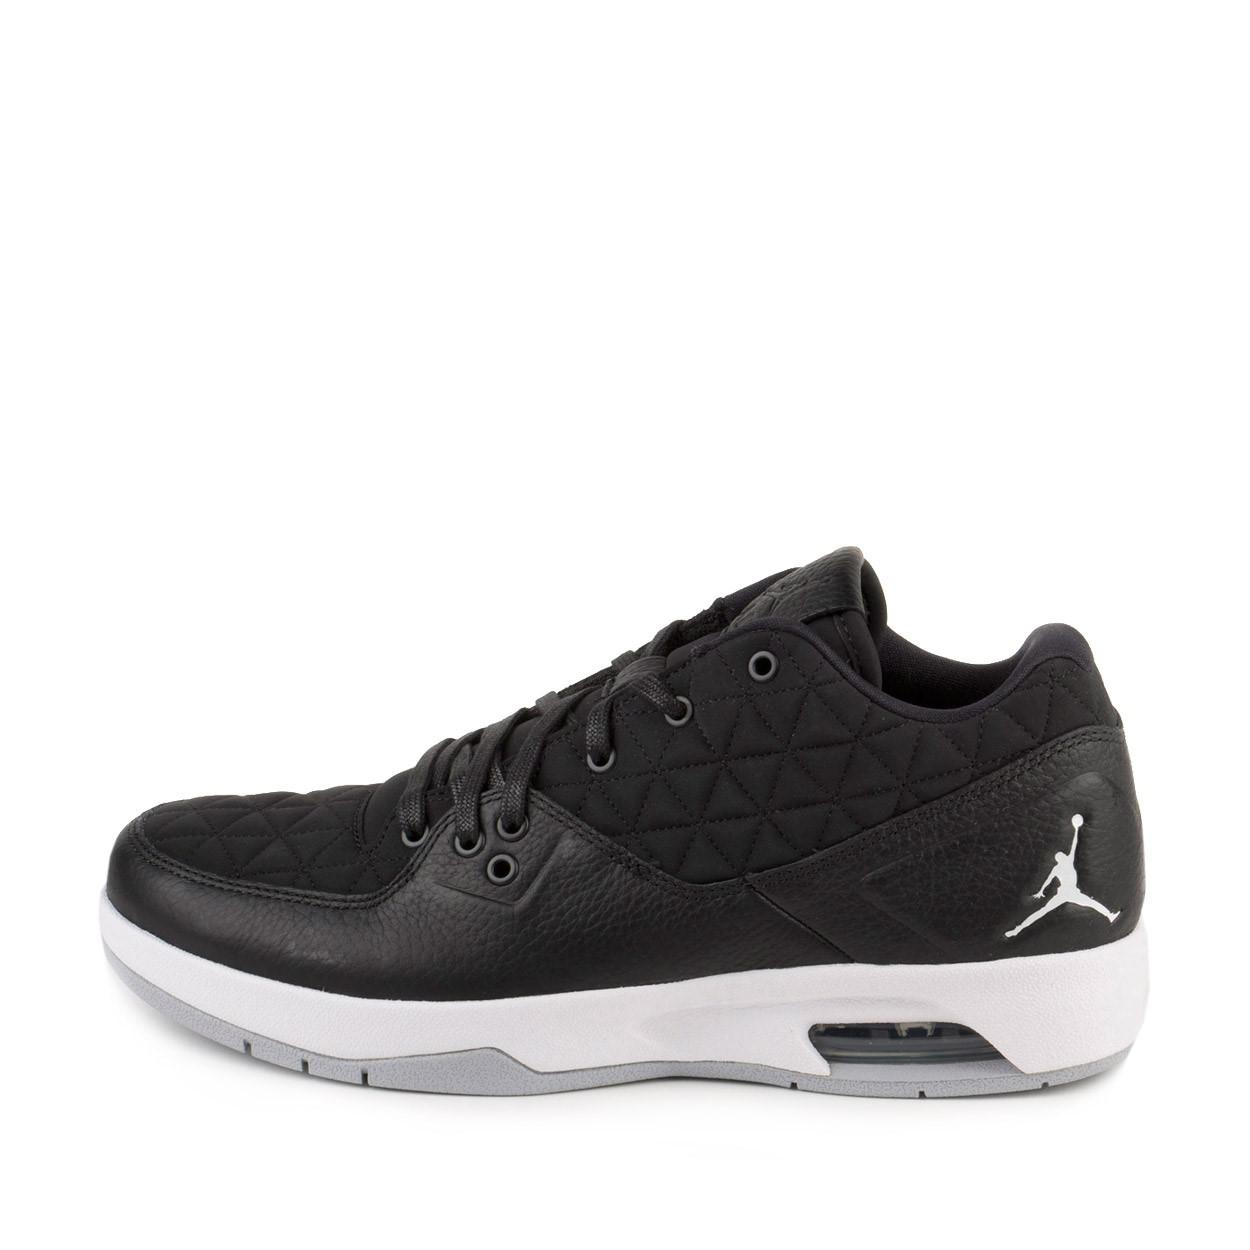 5582591c7bc5ed Lyst - Nike Jordan Clutch Black white-wolf Grey 845043-010 in Black ...